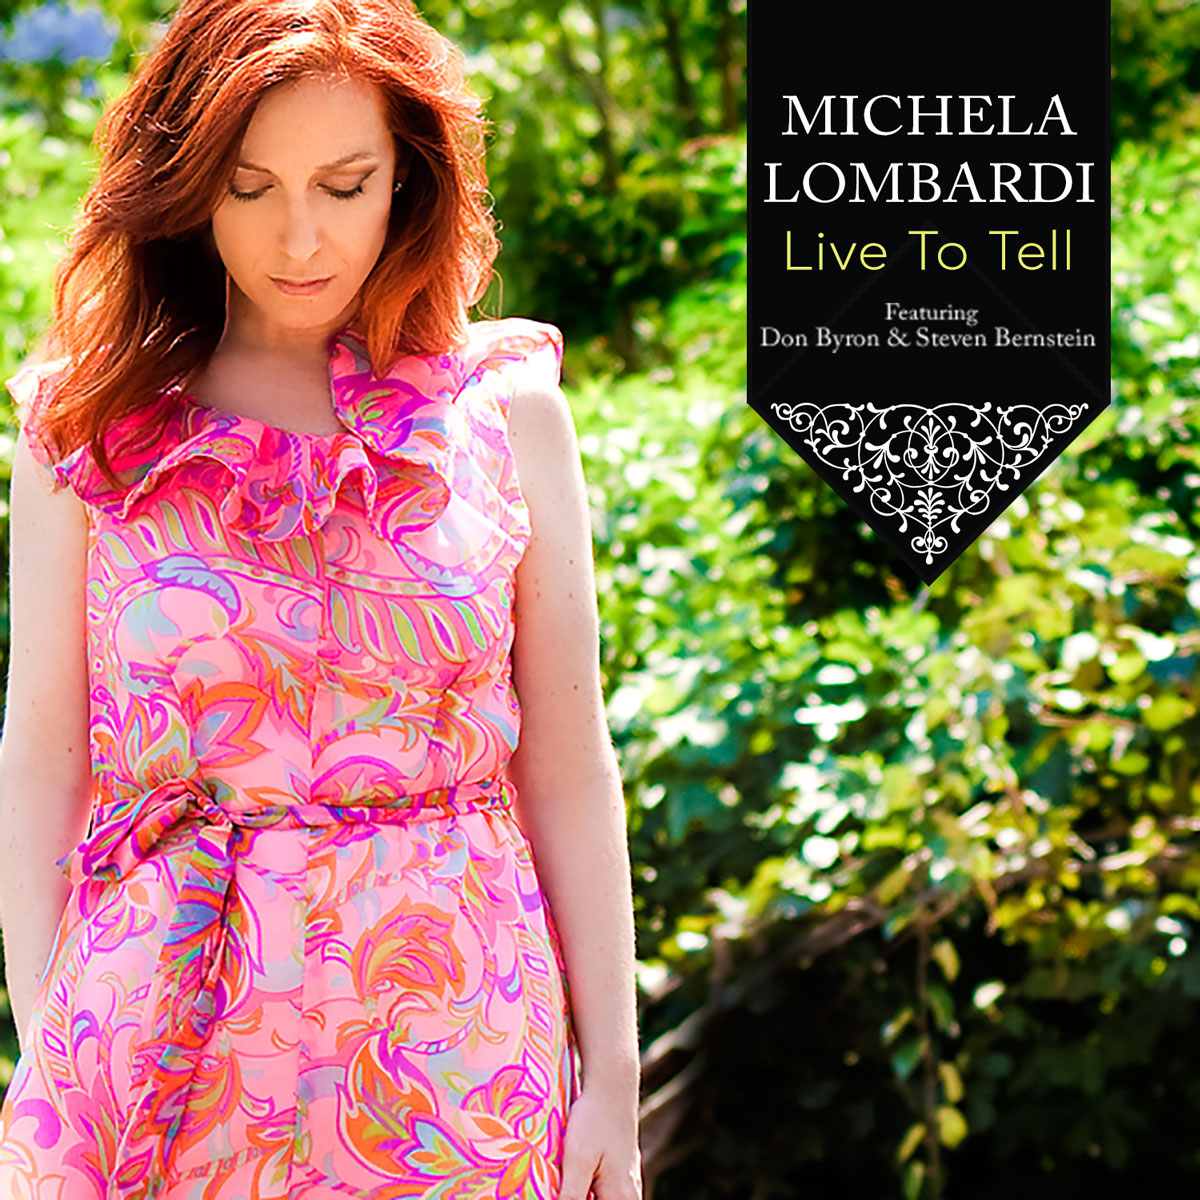 Michela Lombardi Live To Tell